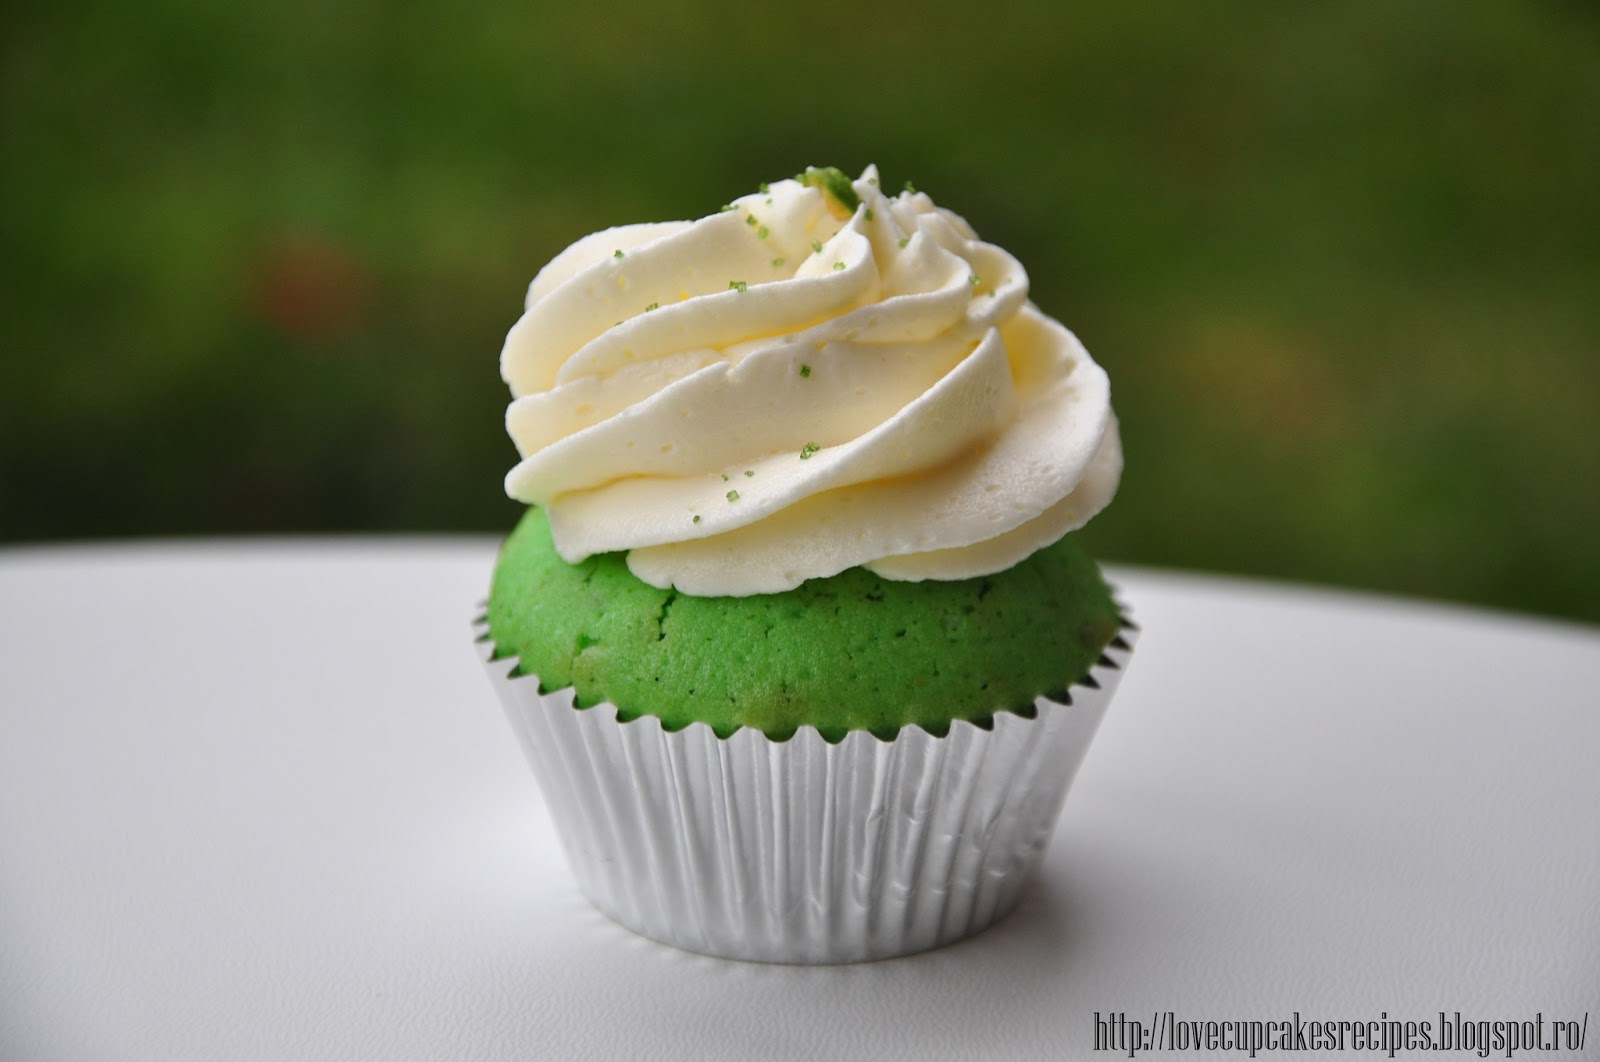 Pistachio Cupcakes | Love, Sweets & Cupcakes